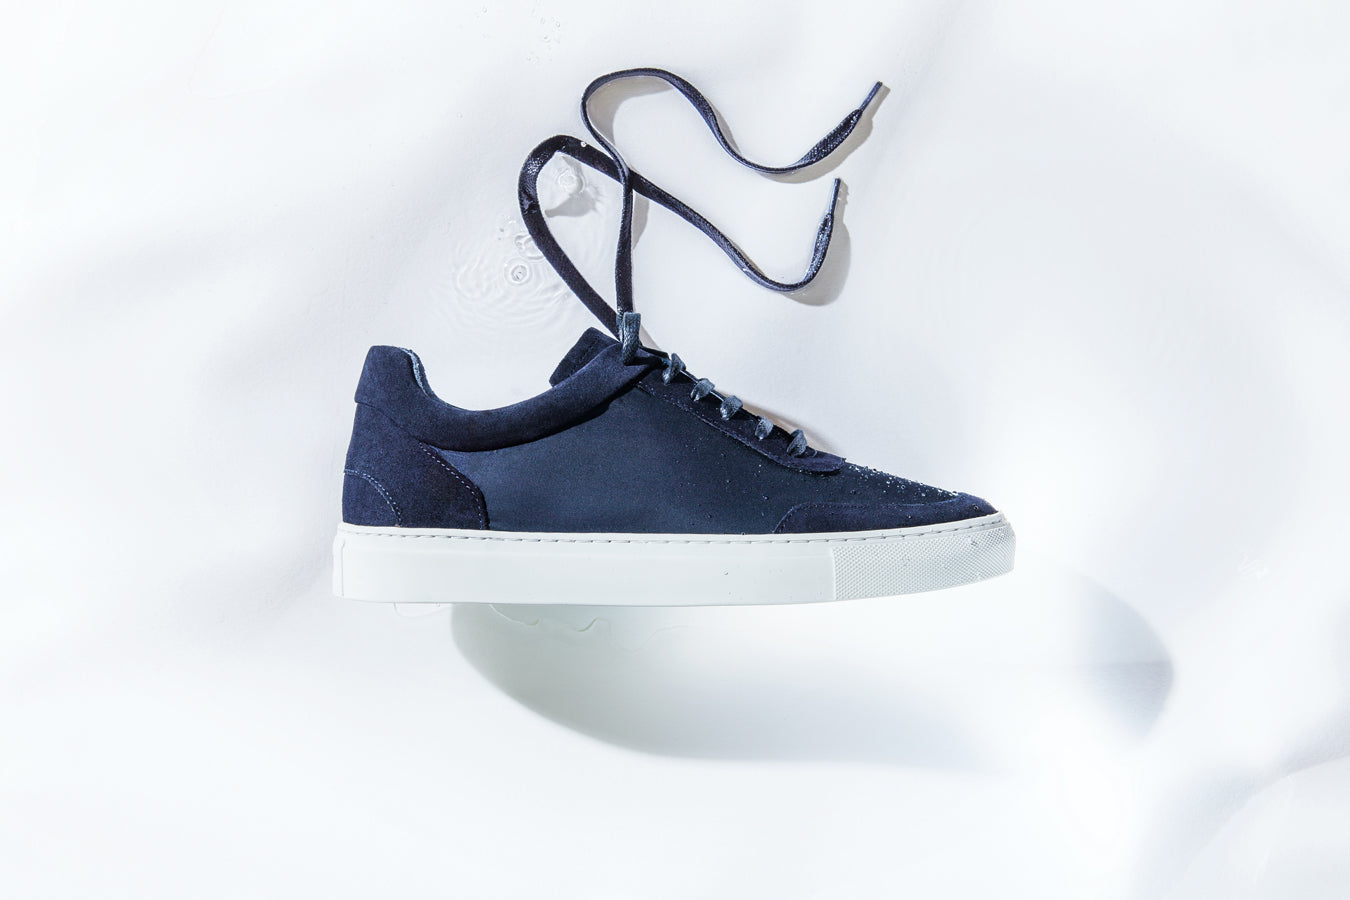 weatherproof sneaker no-2, midnight